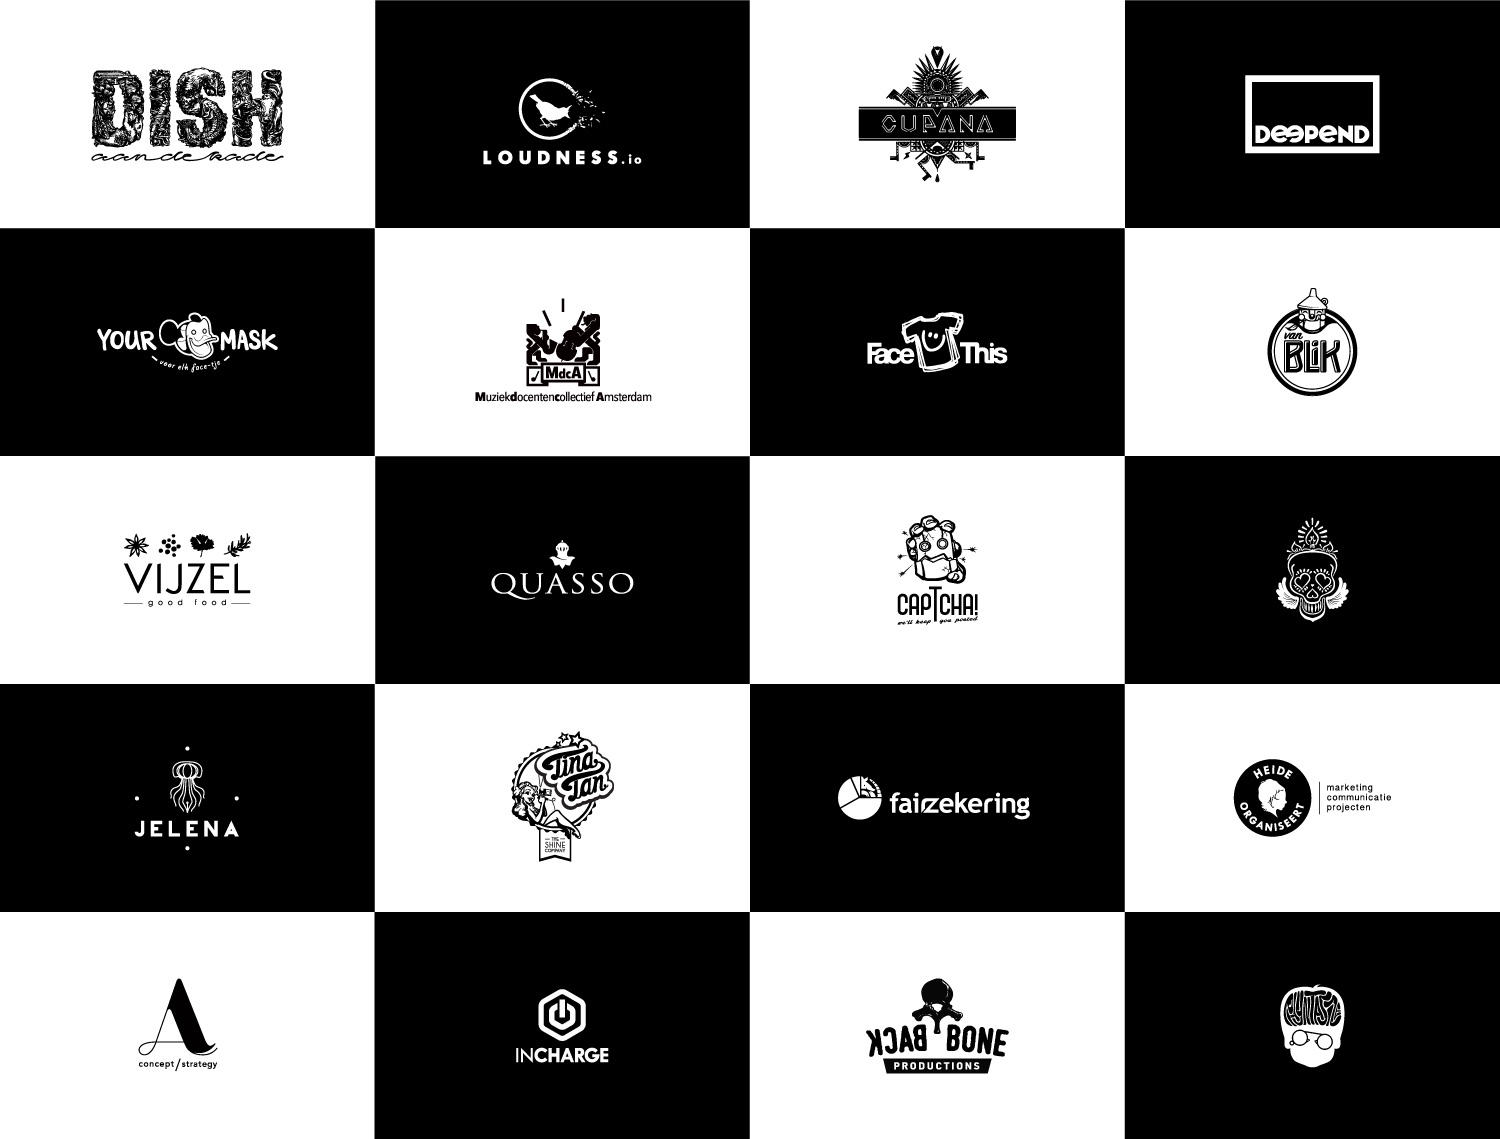 Logos overview